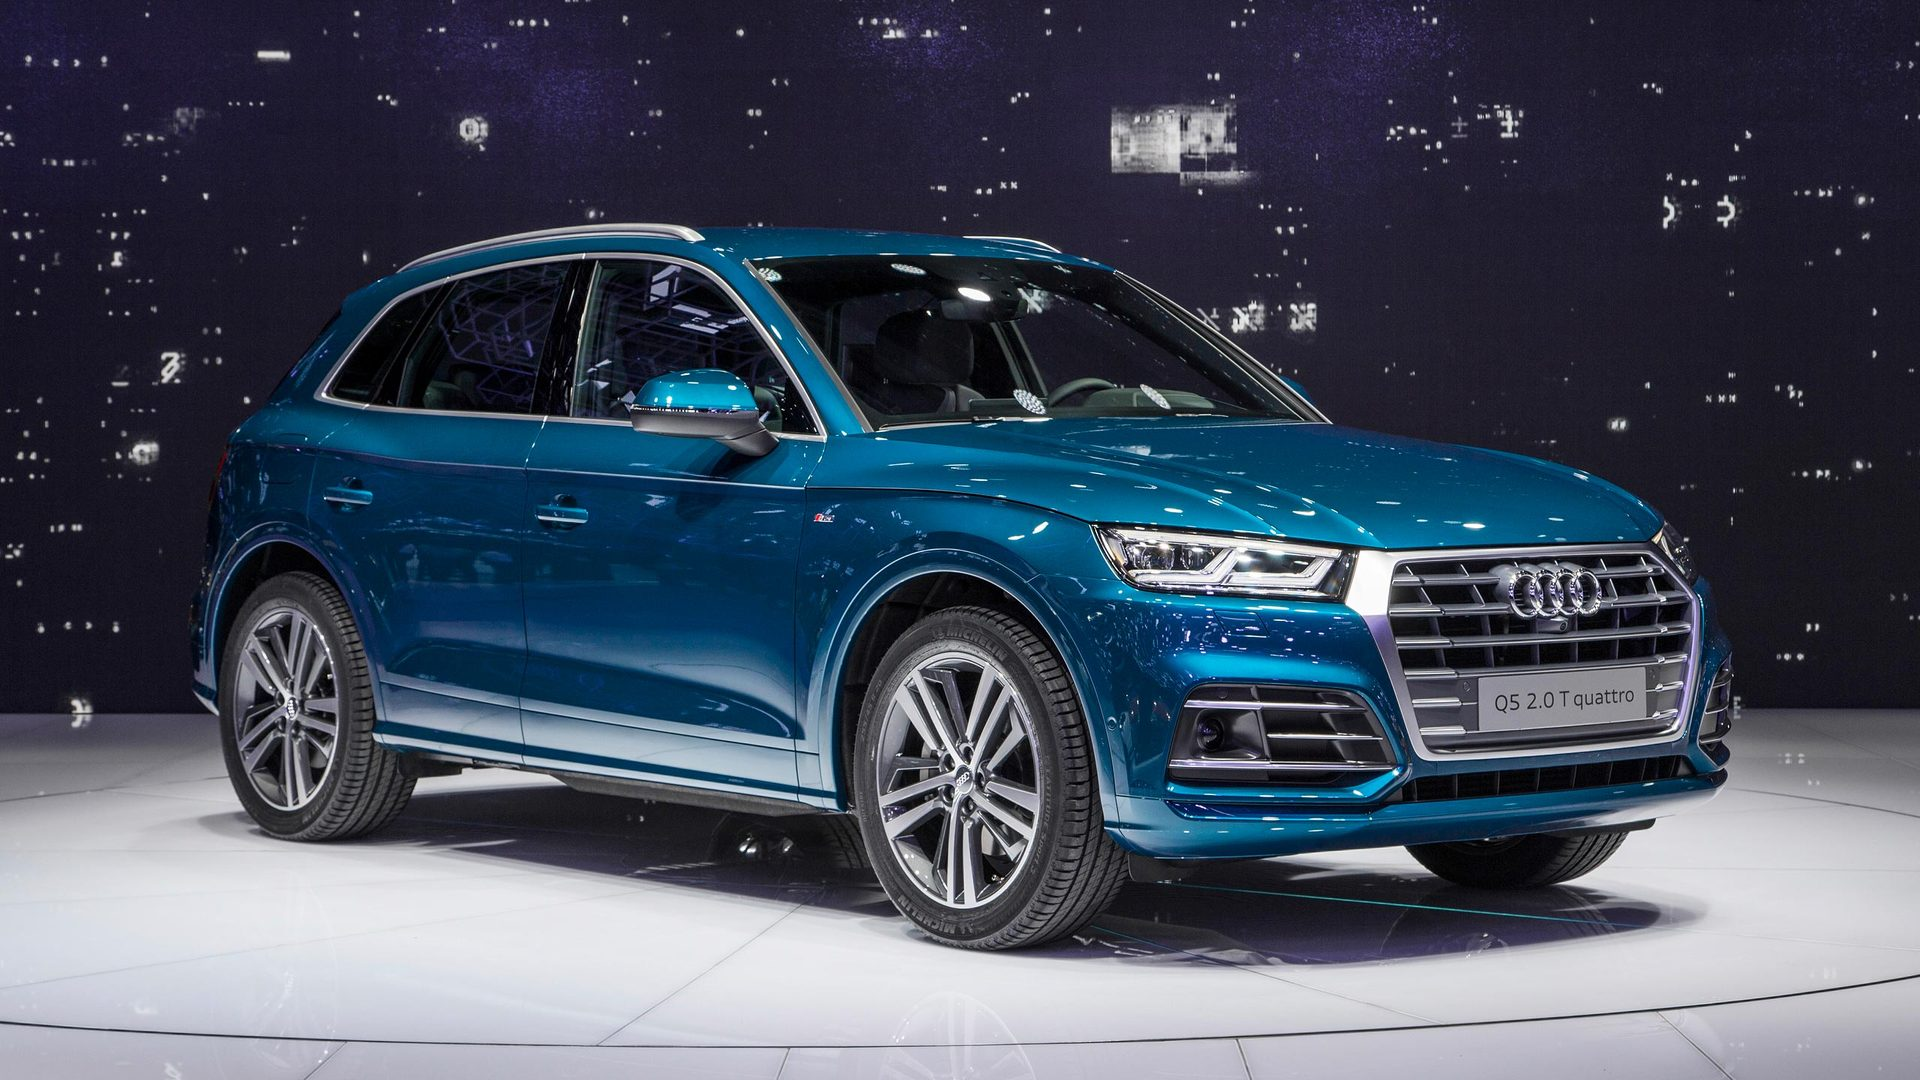 2017 Audi Q5 Blue | 200+ Interior and Exterior Images